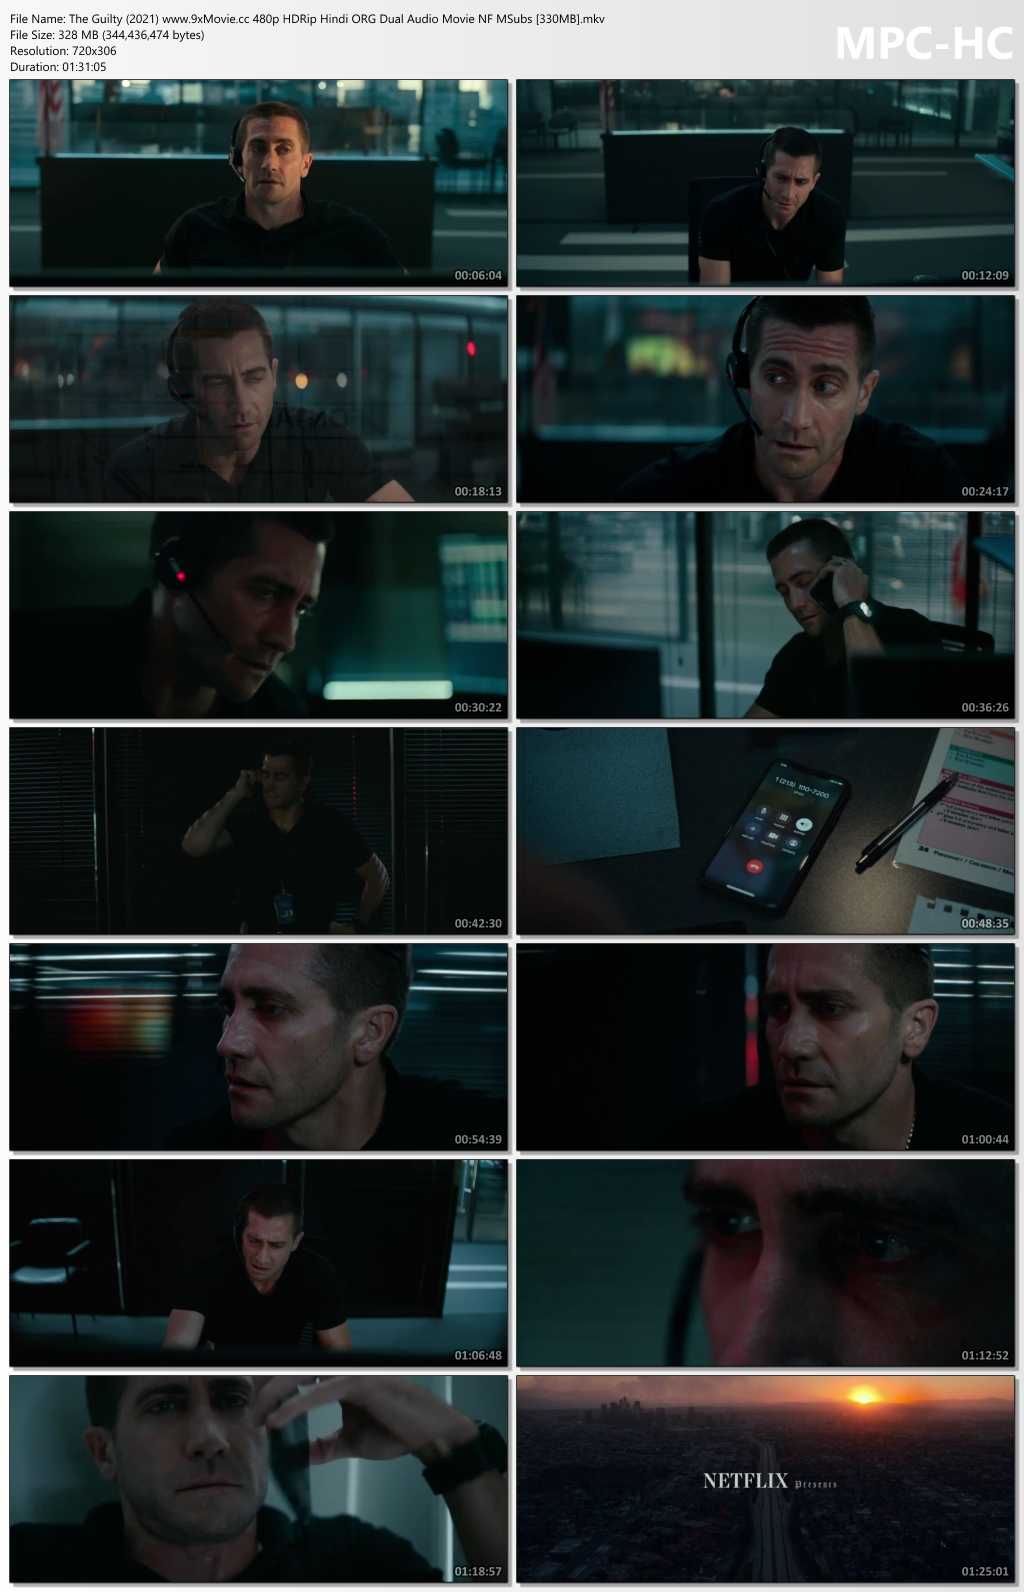 The-Guilty-2021-www-9x-Movie-cc-480p-HDRip-Hindi-ORG-Dual-Audio-Movie-NF-MSubs-330-MB-mkv